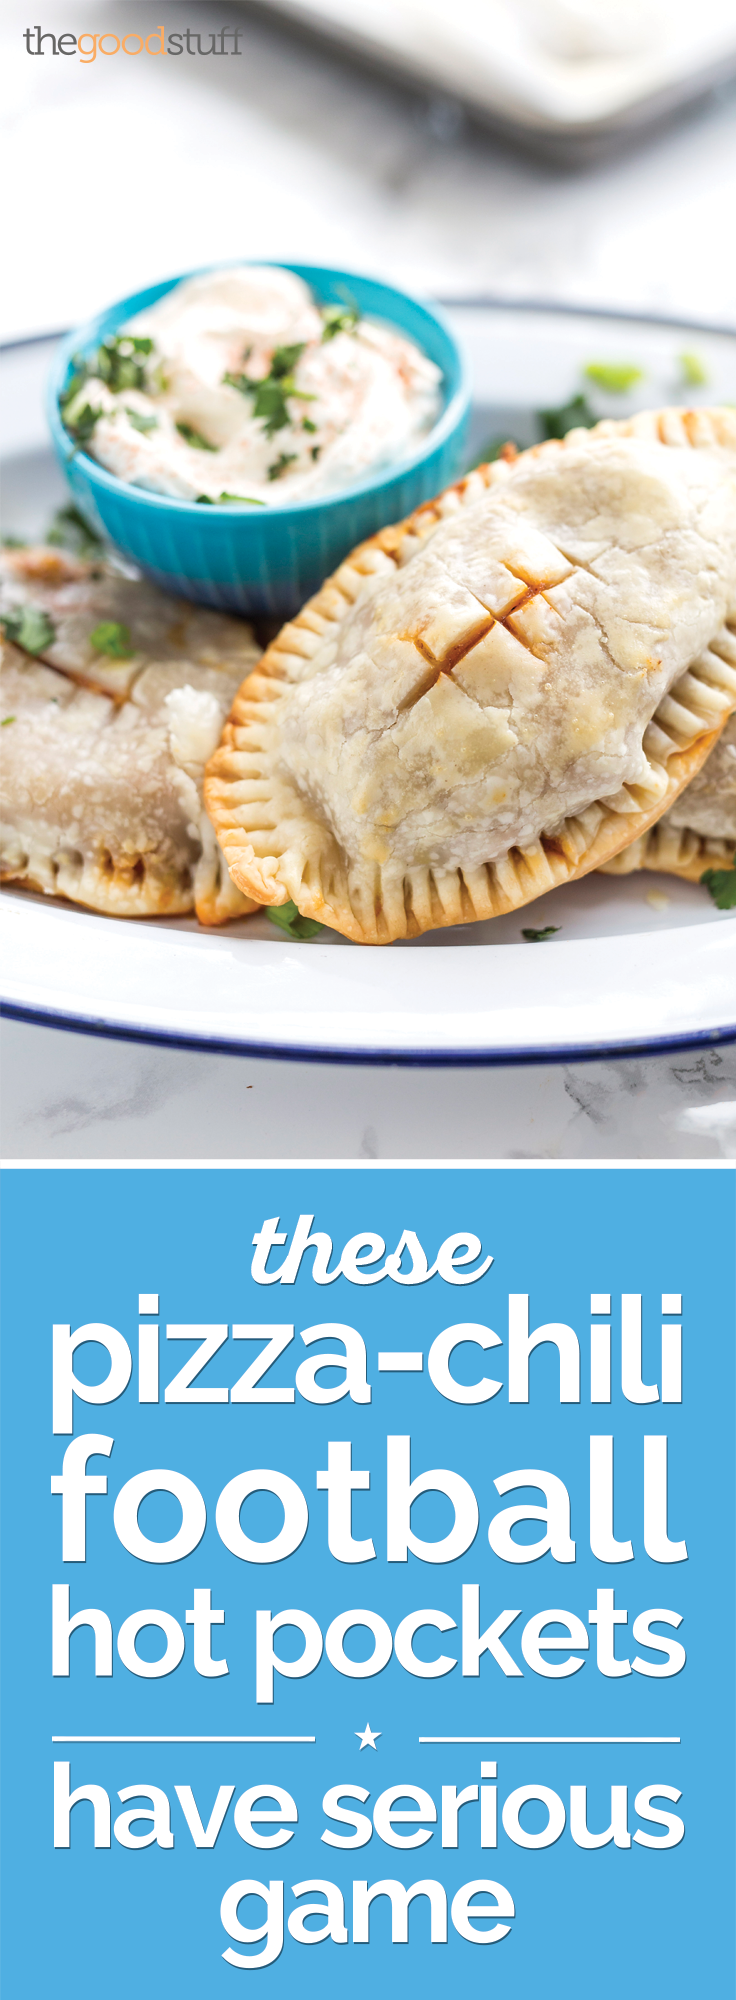 These Pizza-Chili Football Hot Pockets Have Serious Game | thegoodstuff